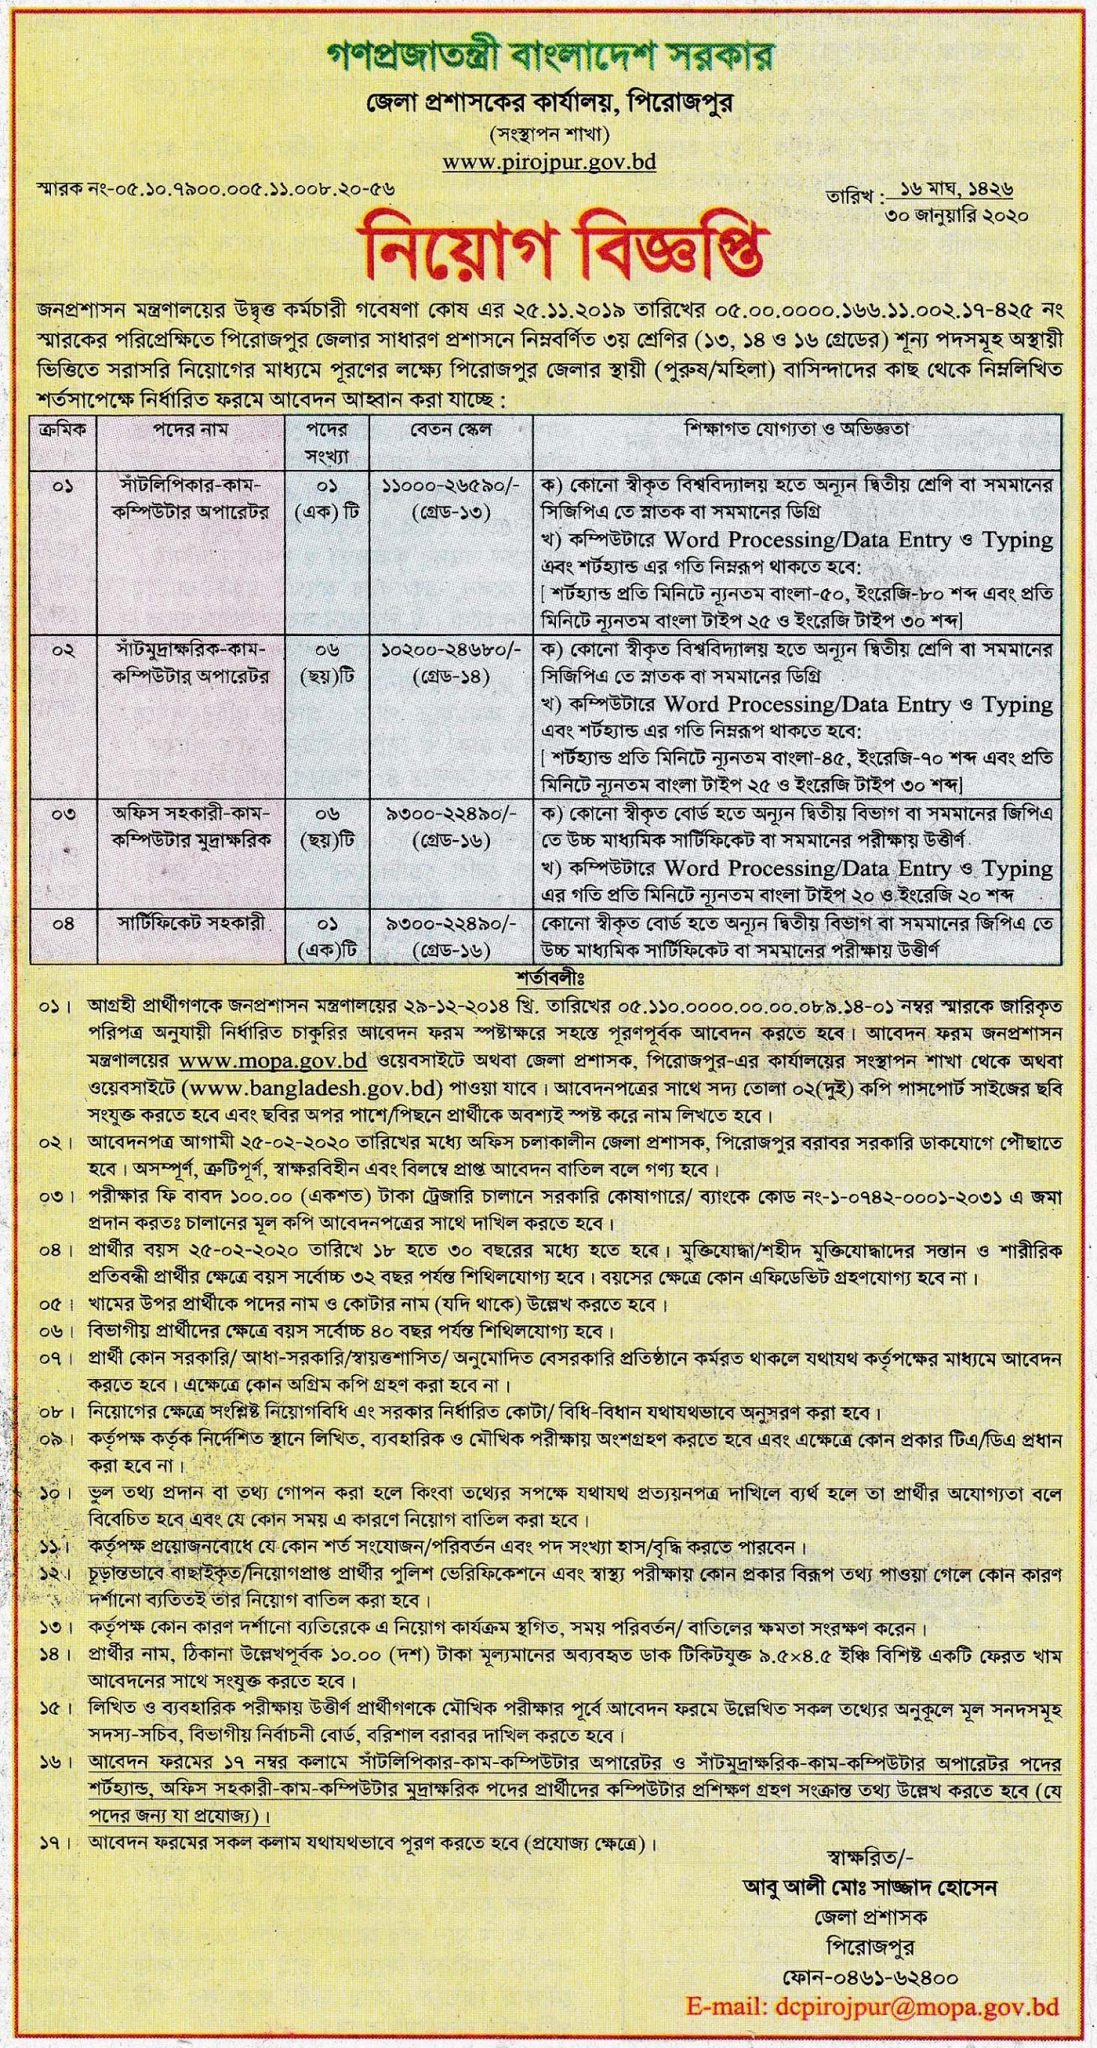 Pirojpur Deputy Commissioner's Office Job Circular 2020